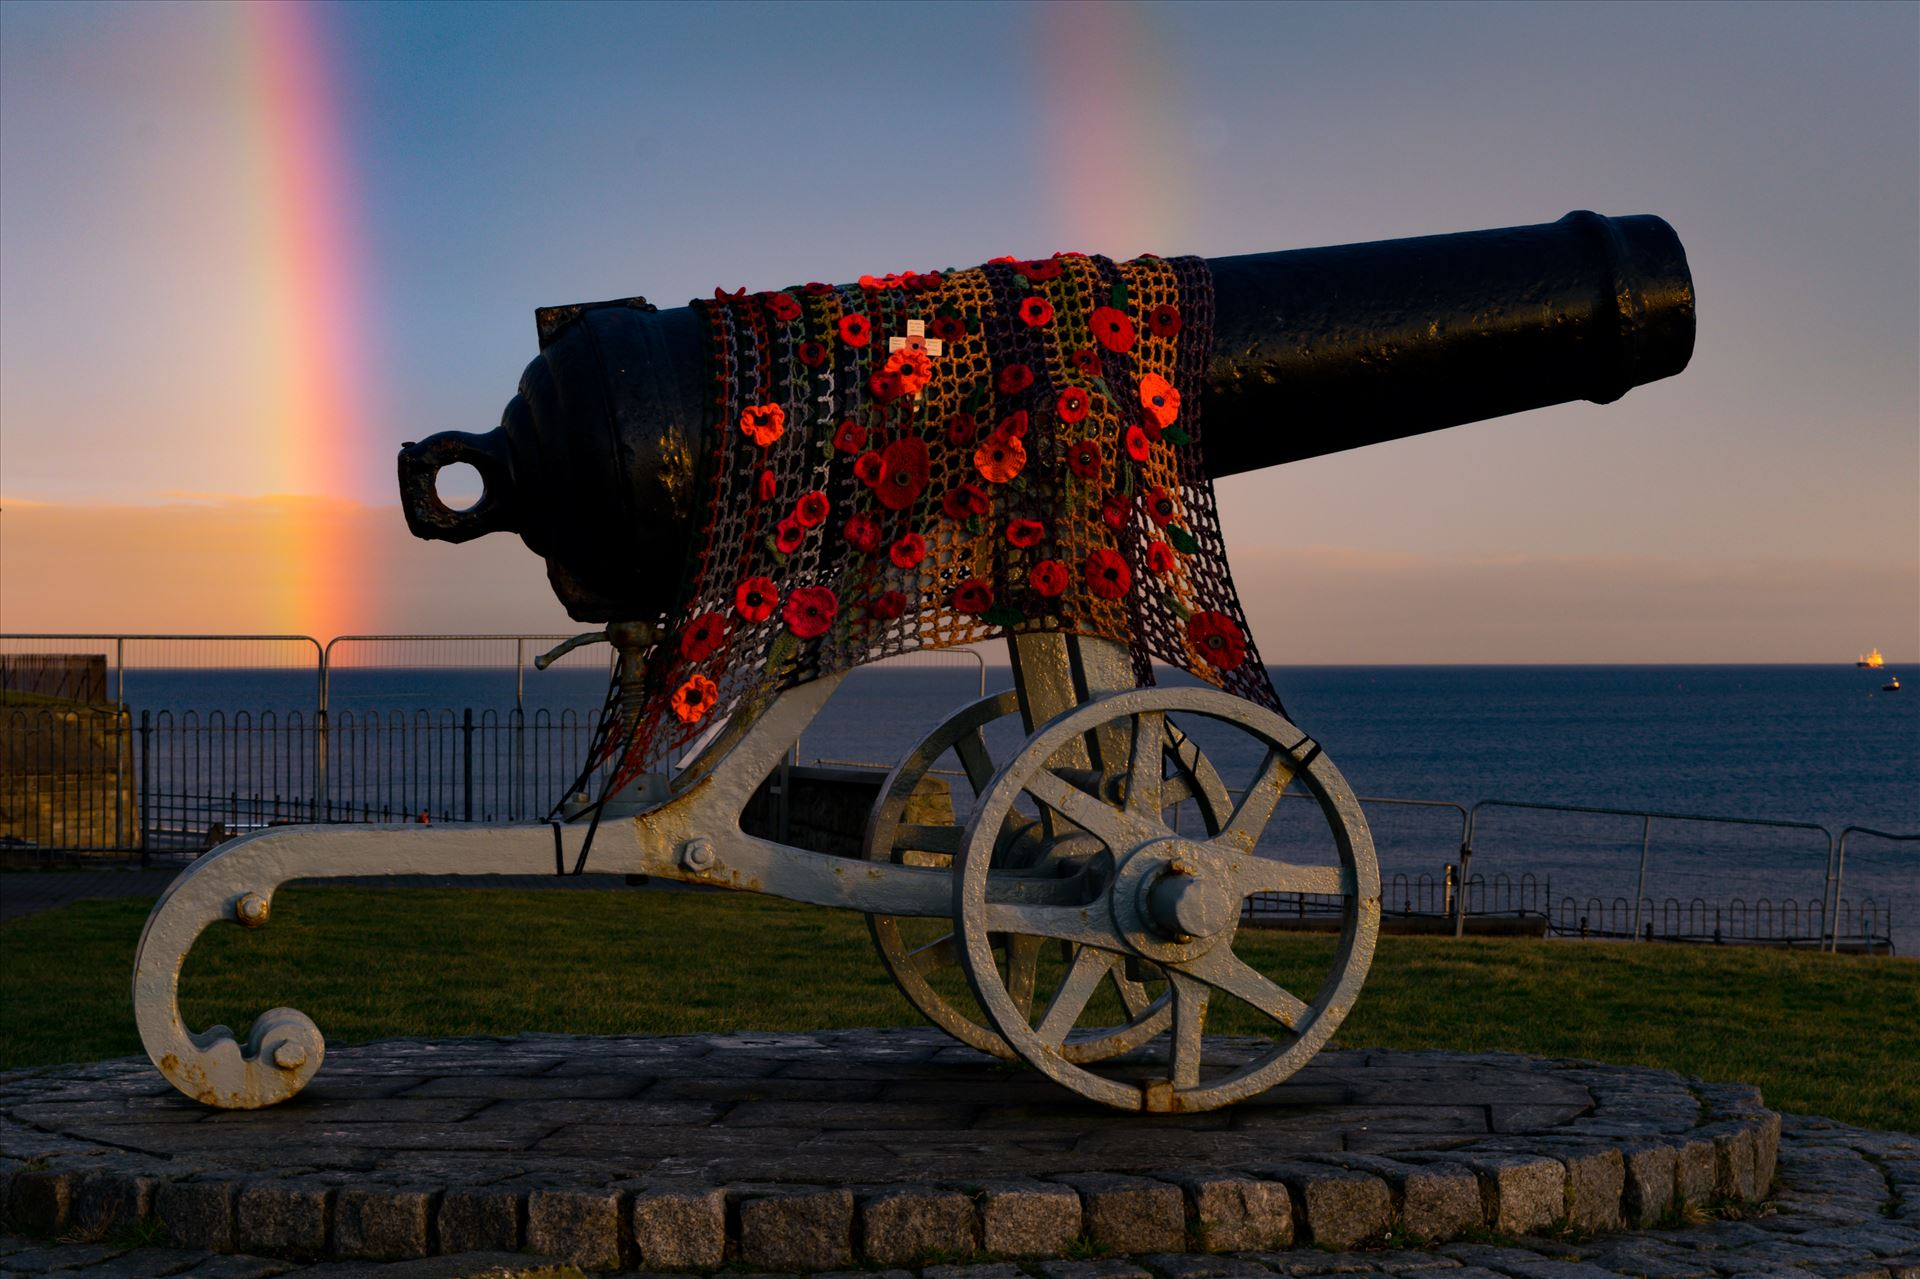 Cannon Double Rainbow - The Cannon at Hartlepool Headland with a Double rainbow behind it by AJ Stoves Photography